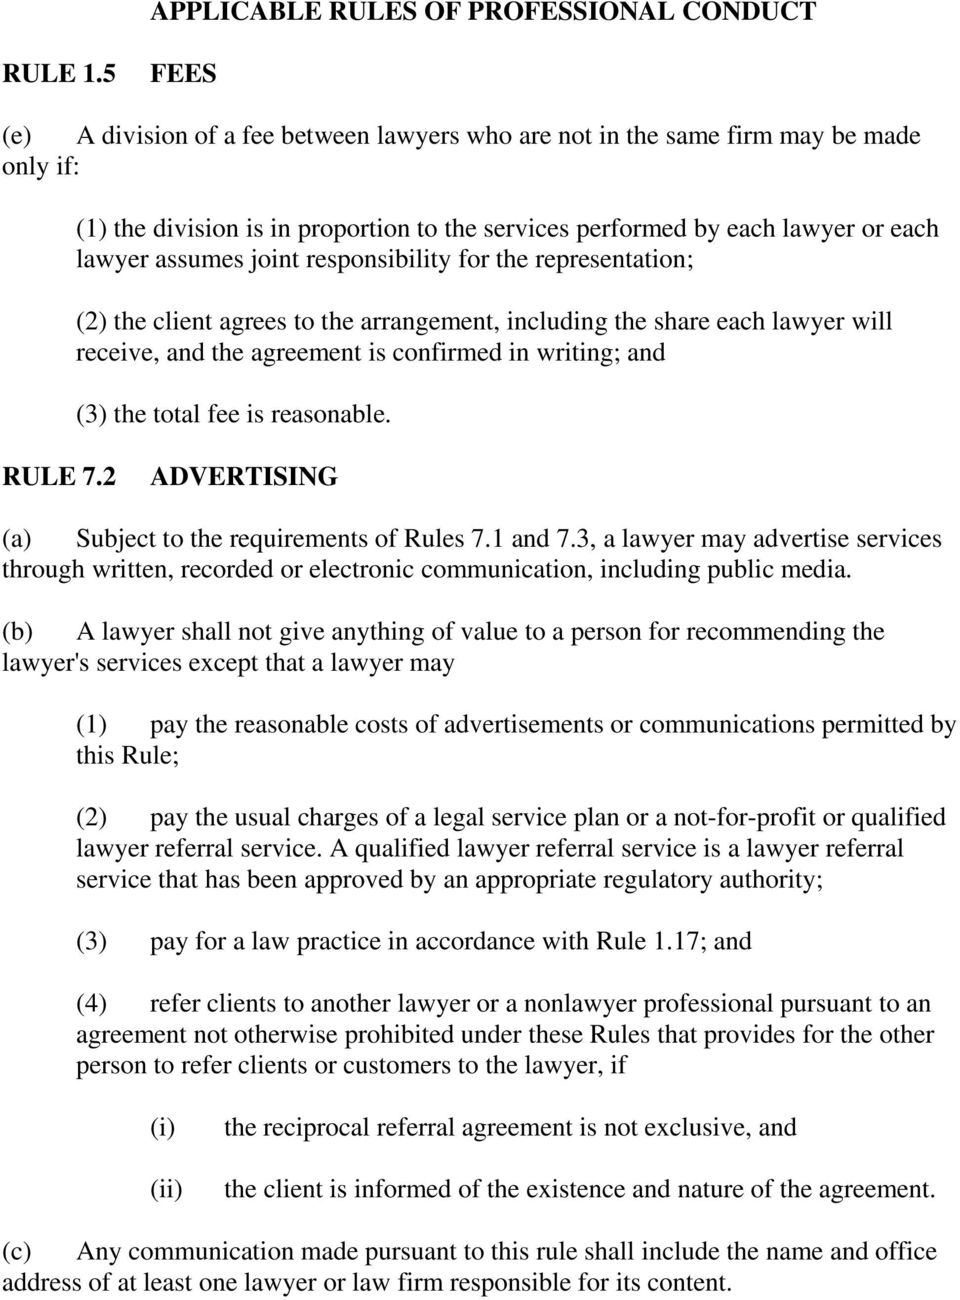 joint responsibility for the representation; (2) the client agrees to the arrangement, including the share each lawyer will receive, and the agreement is confirmed in writing; and (3) the total fee